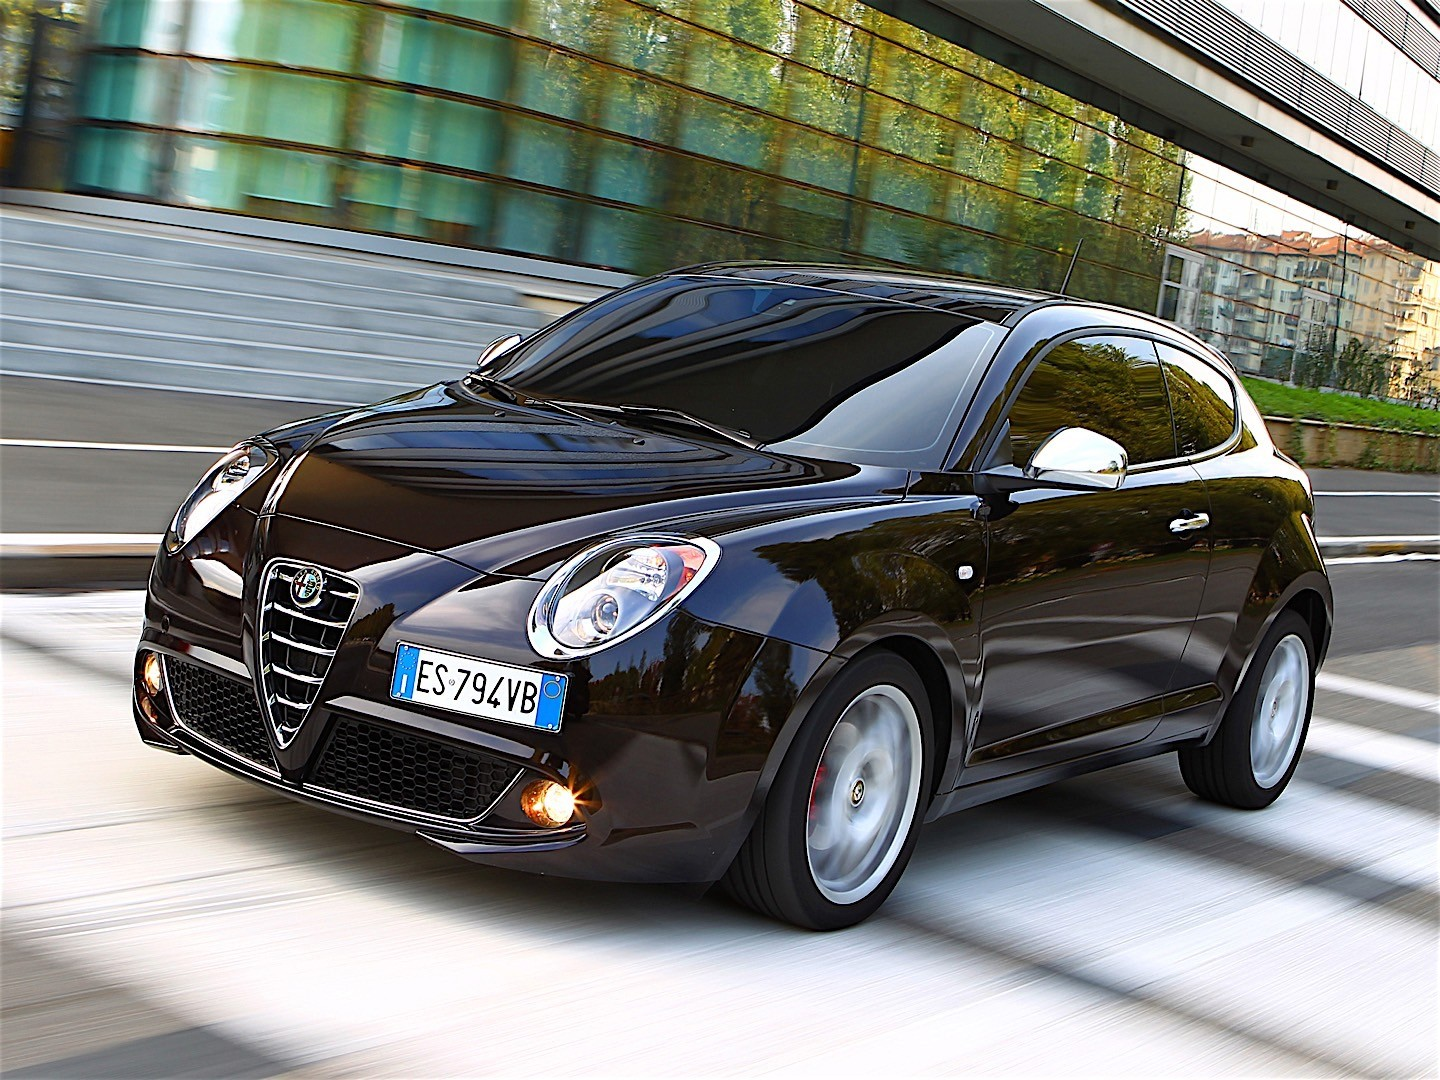 alfa romeo mito specs photos 2013 2014 2015 2016. Black Bedroom Furniture Sets. Home Design Ideas